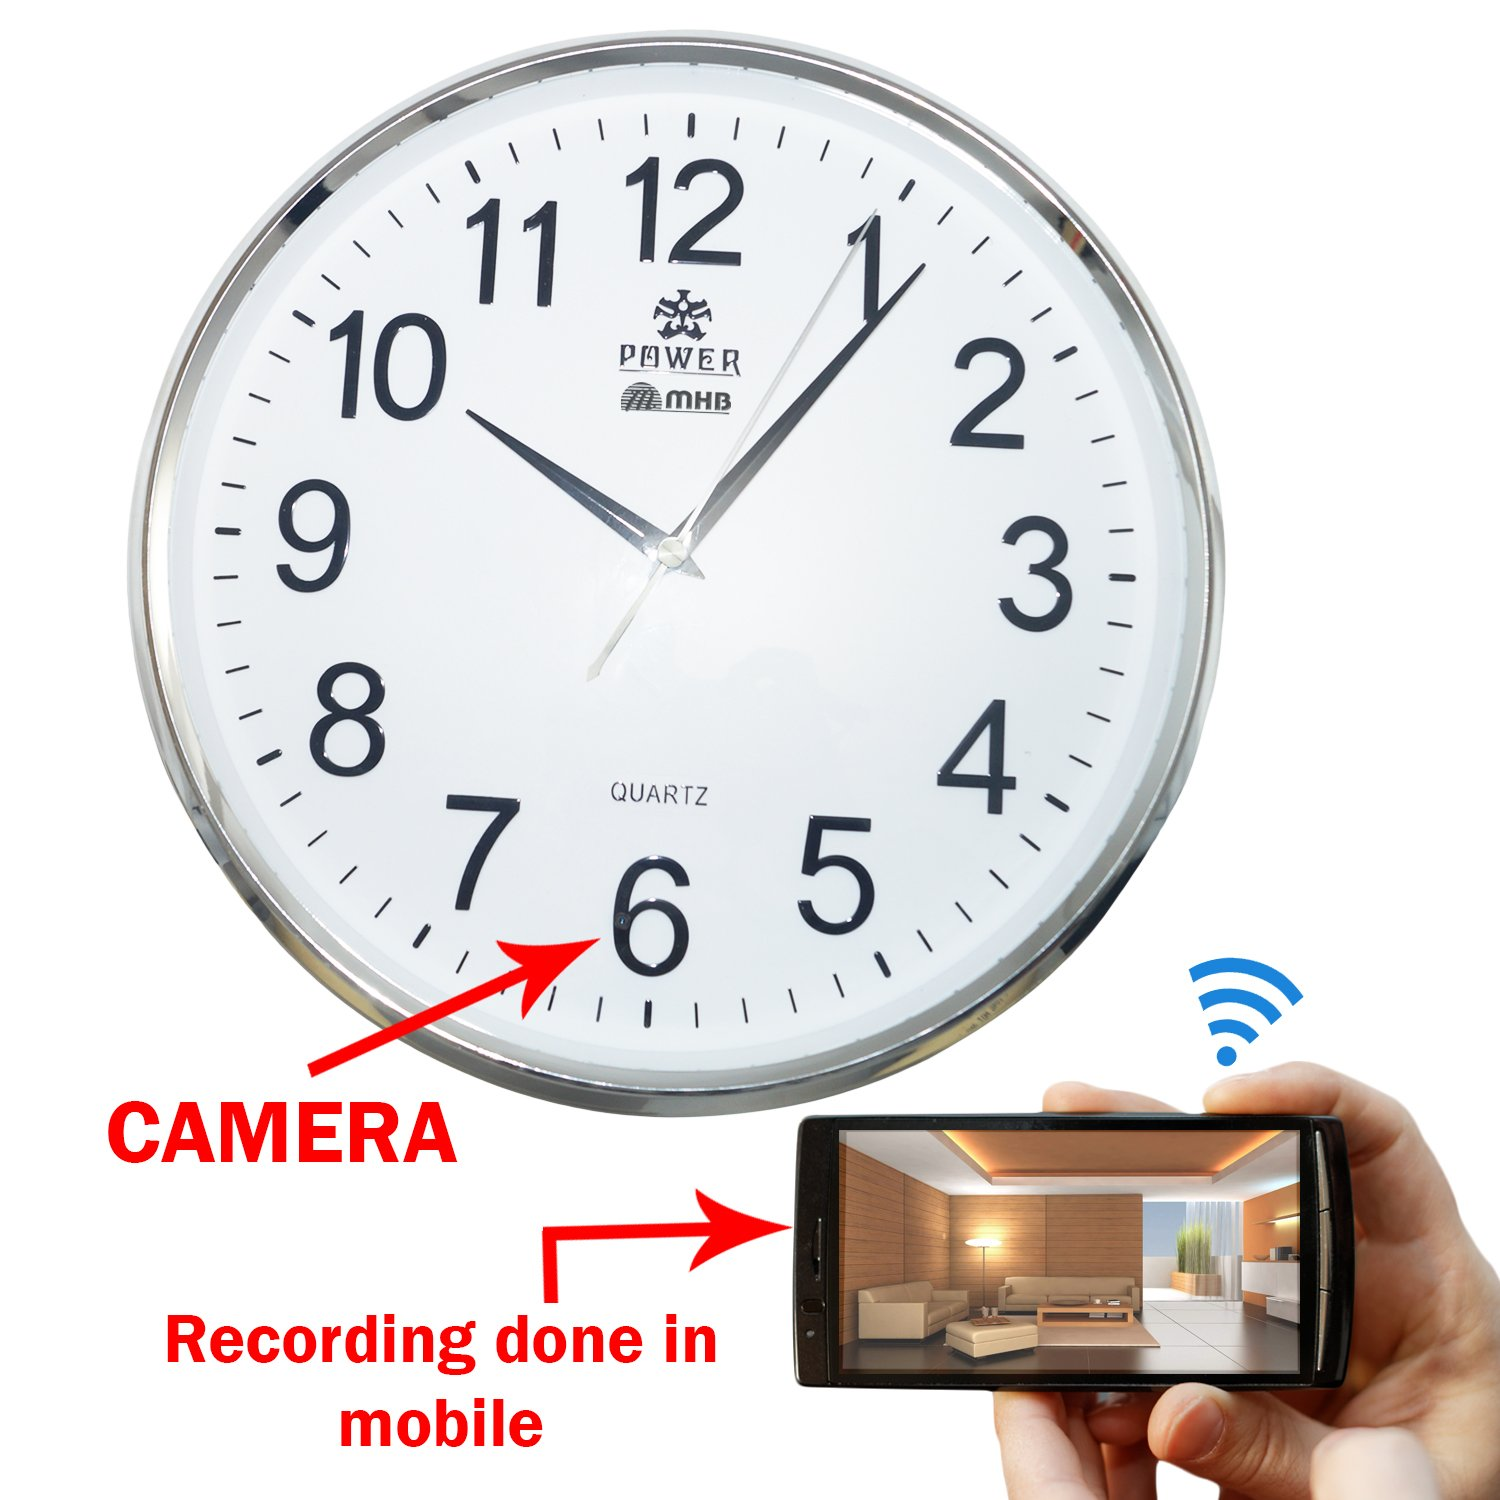 Buy m mhb wifi wall clock hidden spy camera full hd 19201080 buy m mhb wifi wall clock hidden spy camera full hd 19201080 quality online at low price in india m mhb camera reviews ratings amazon amipublicfo Choice Image